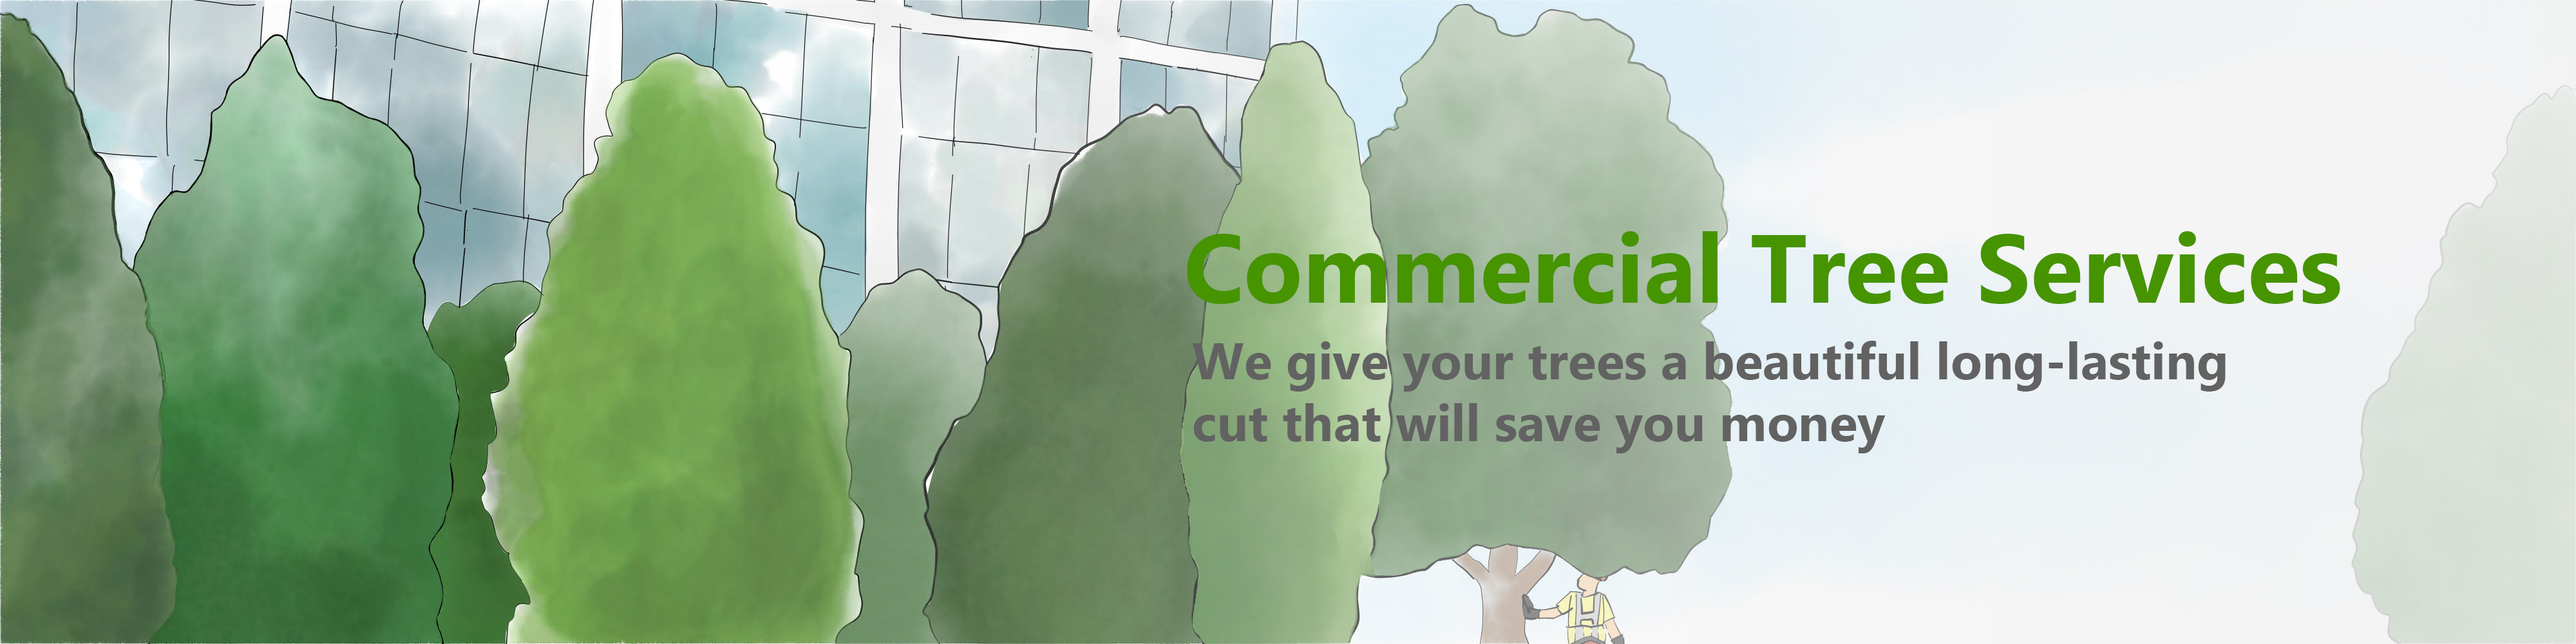 commercial tree services in London.